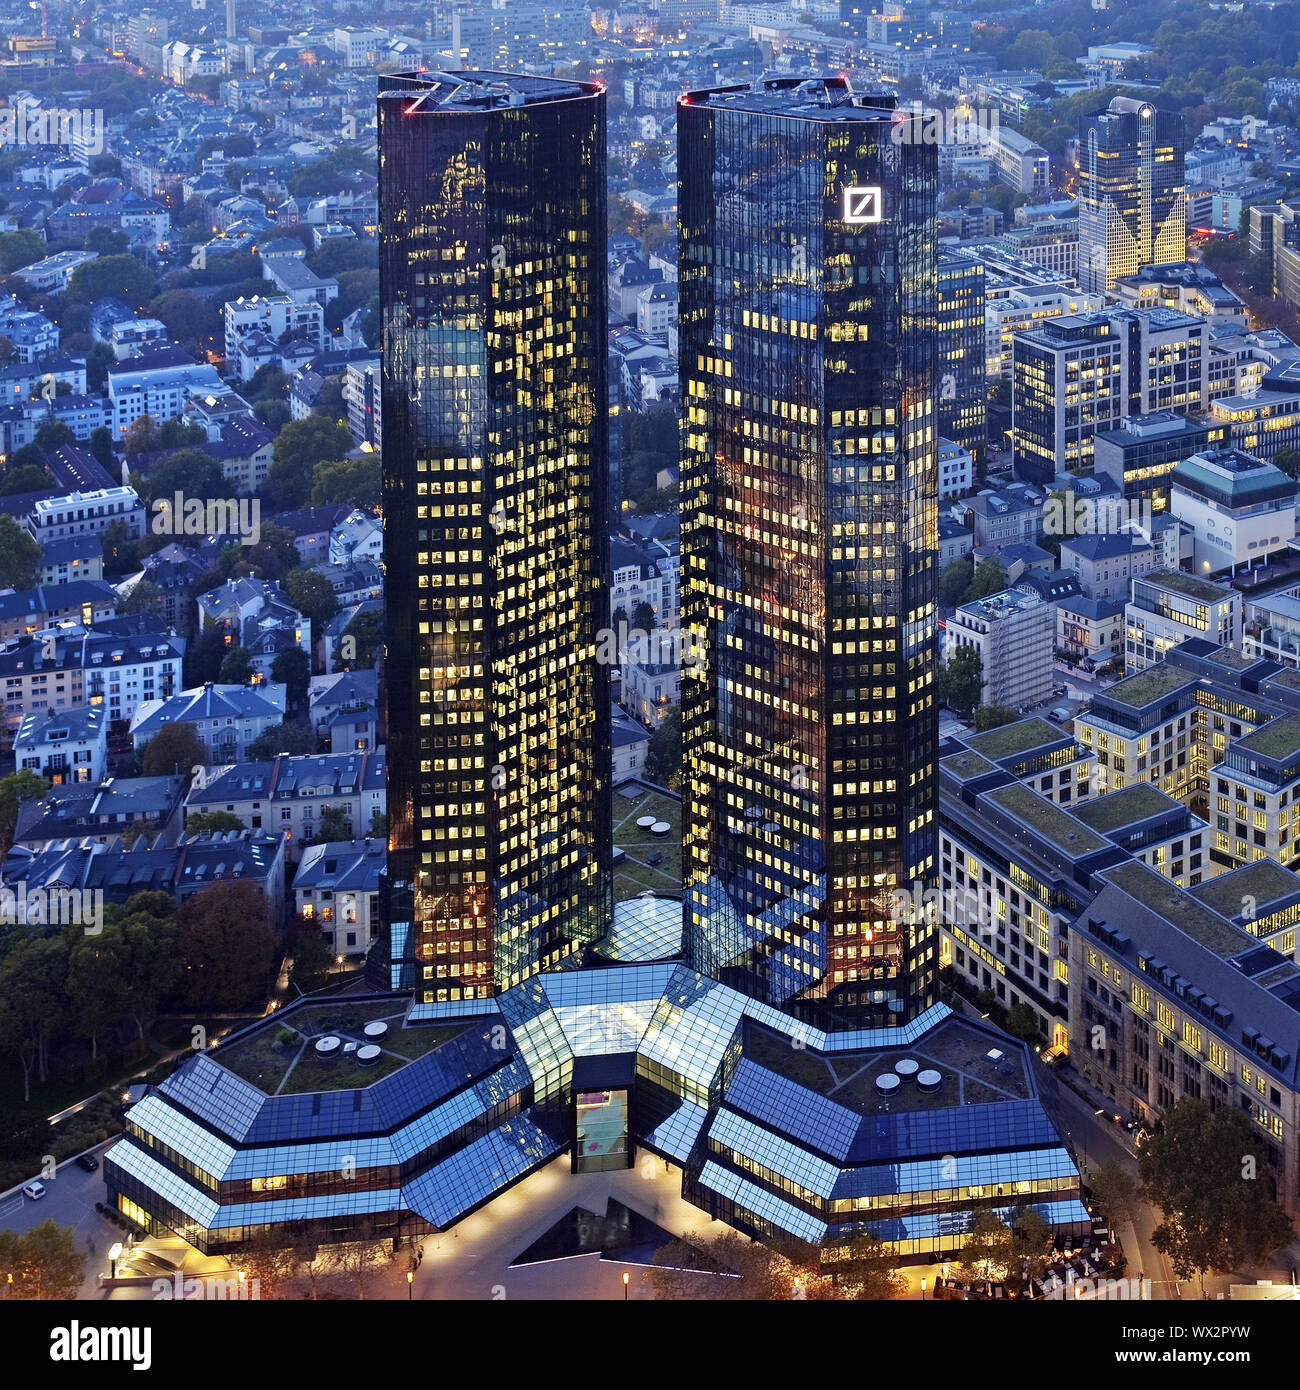 buildings of Deutsche Bank in the evening, Frankfurt am Main, Hesse, Germany, Europe Stock Photo